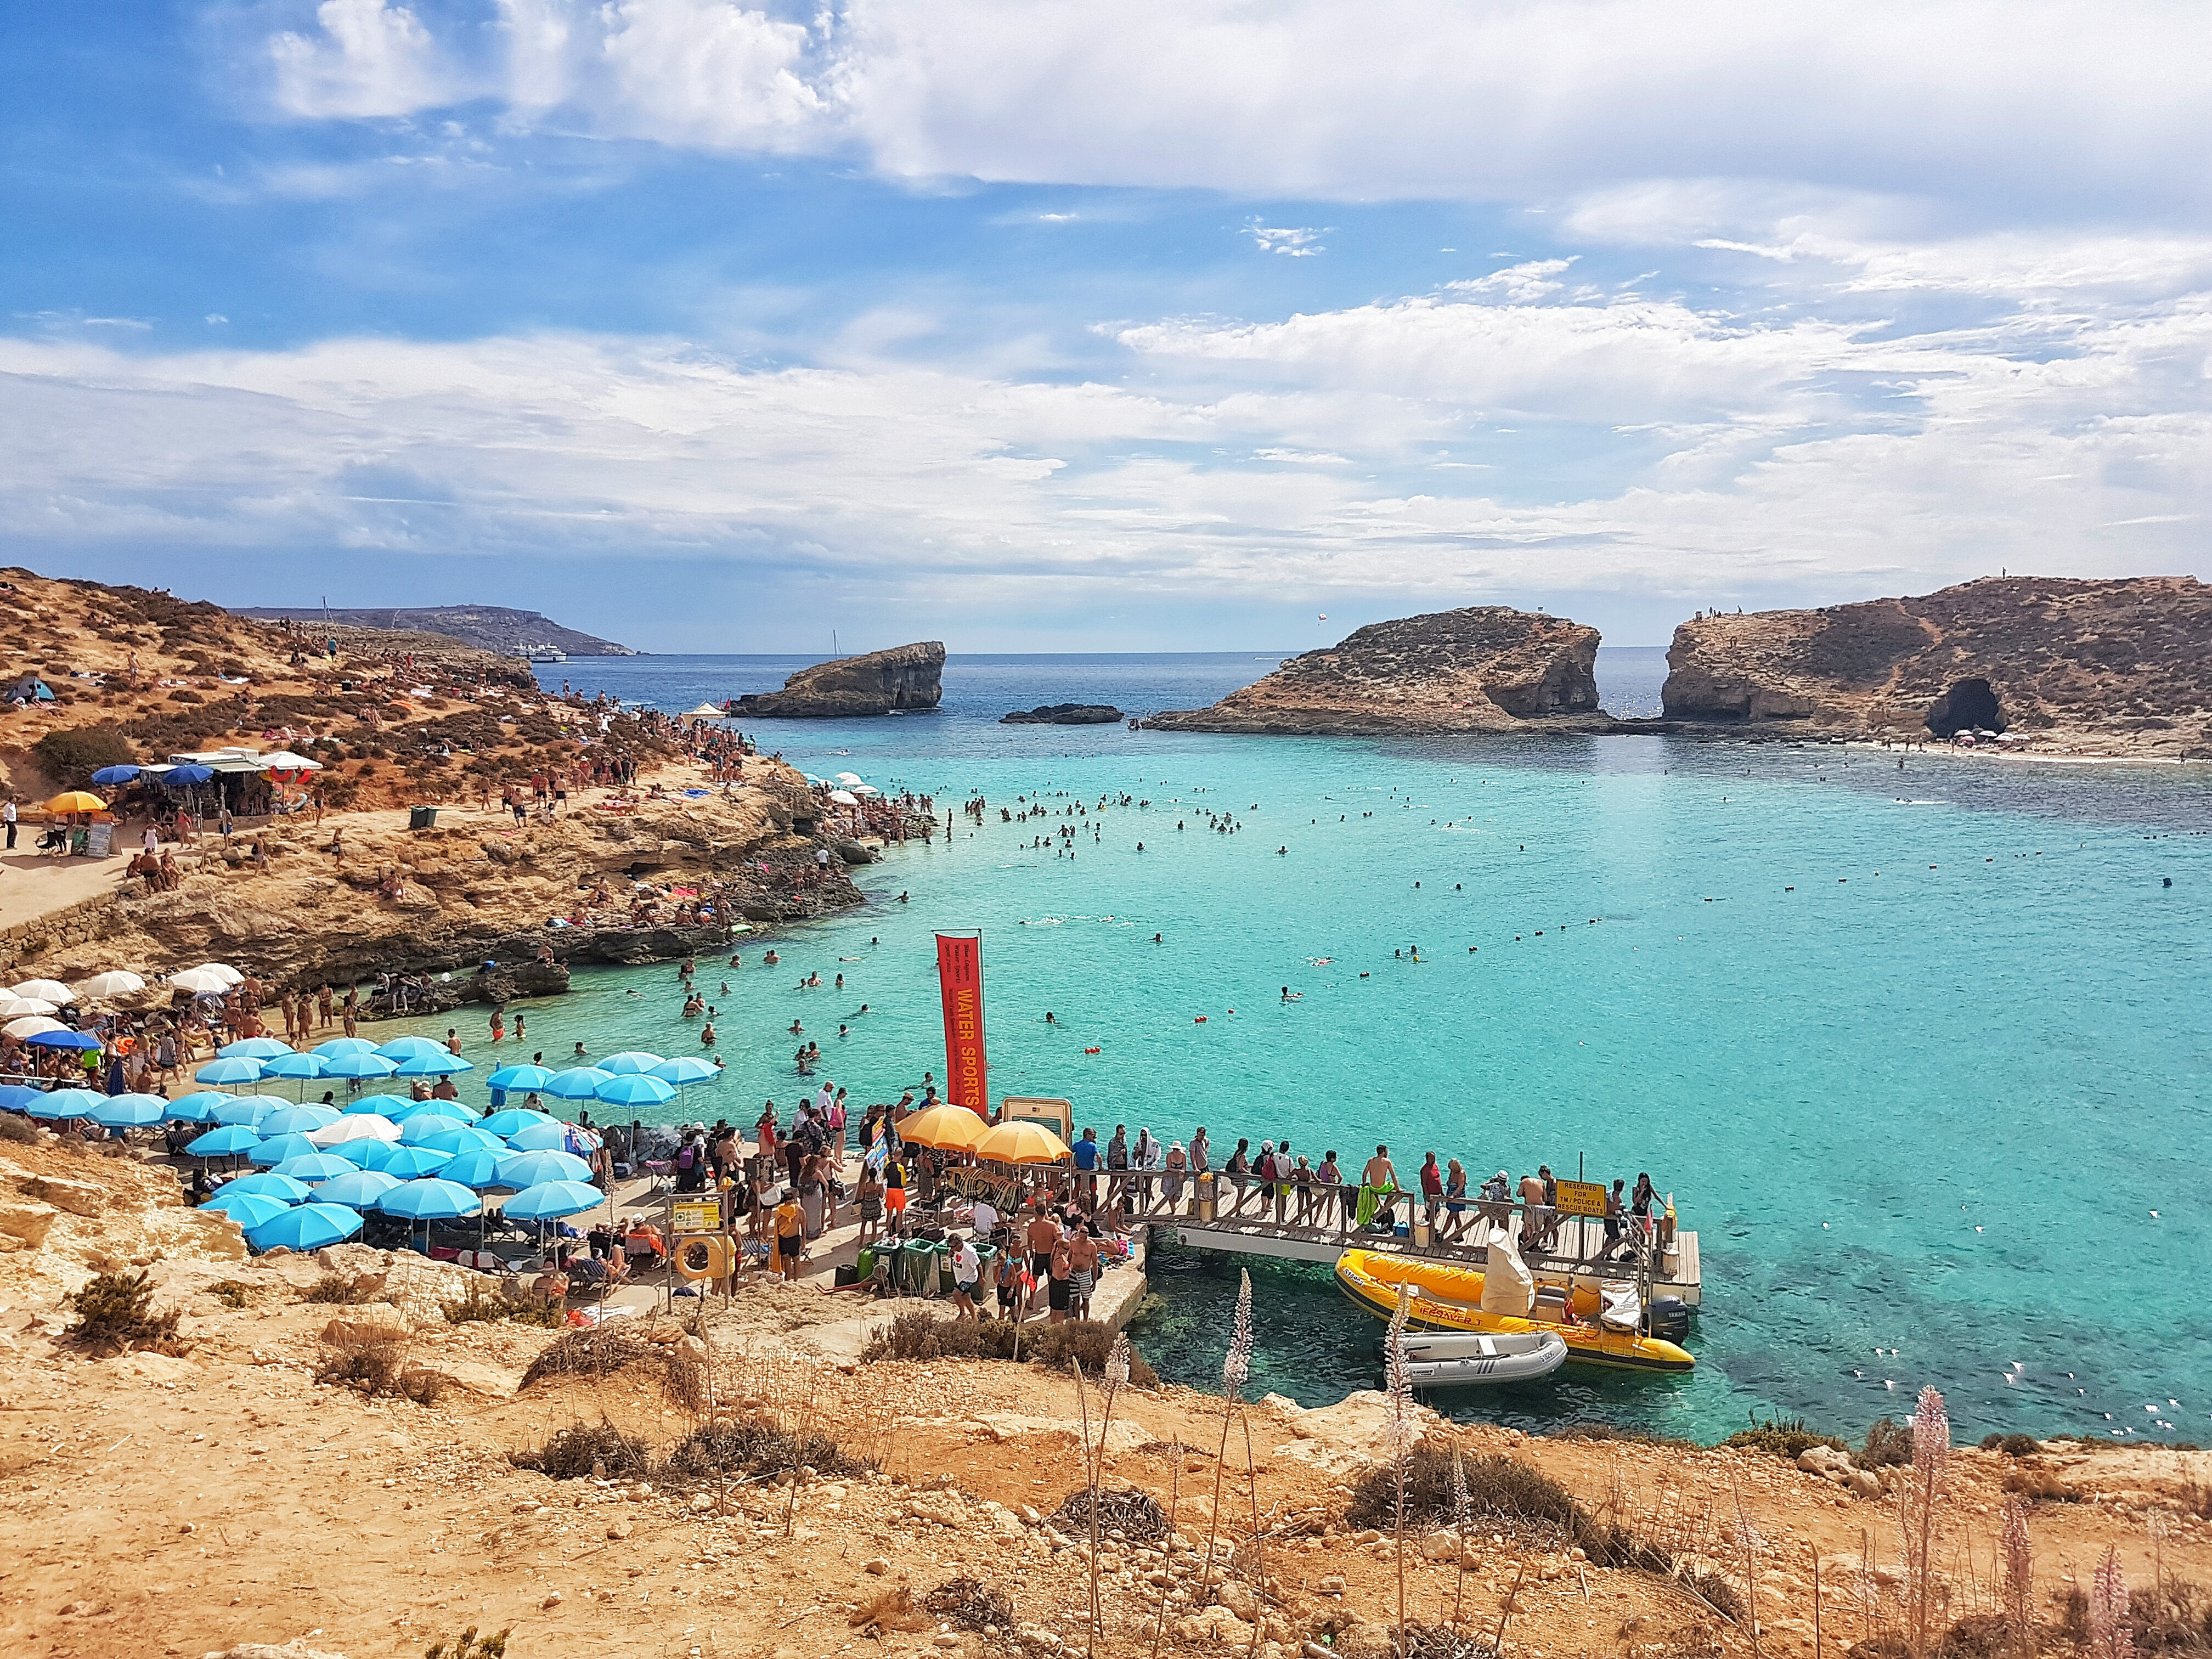 the beach at Comino island in Malta #cominoisland #malta #travel